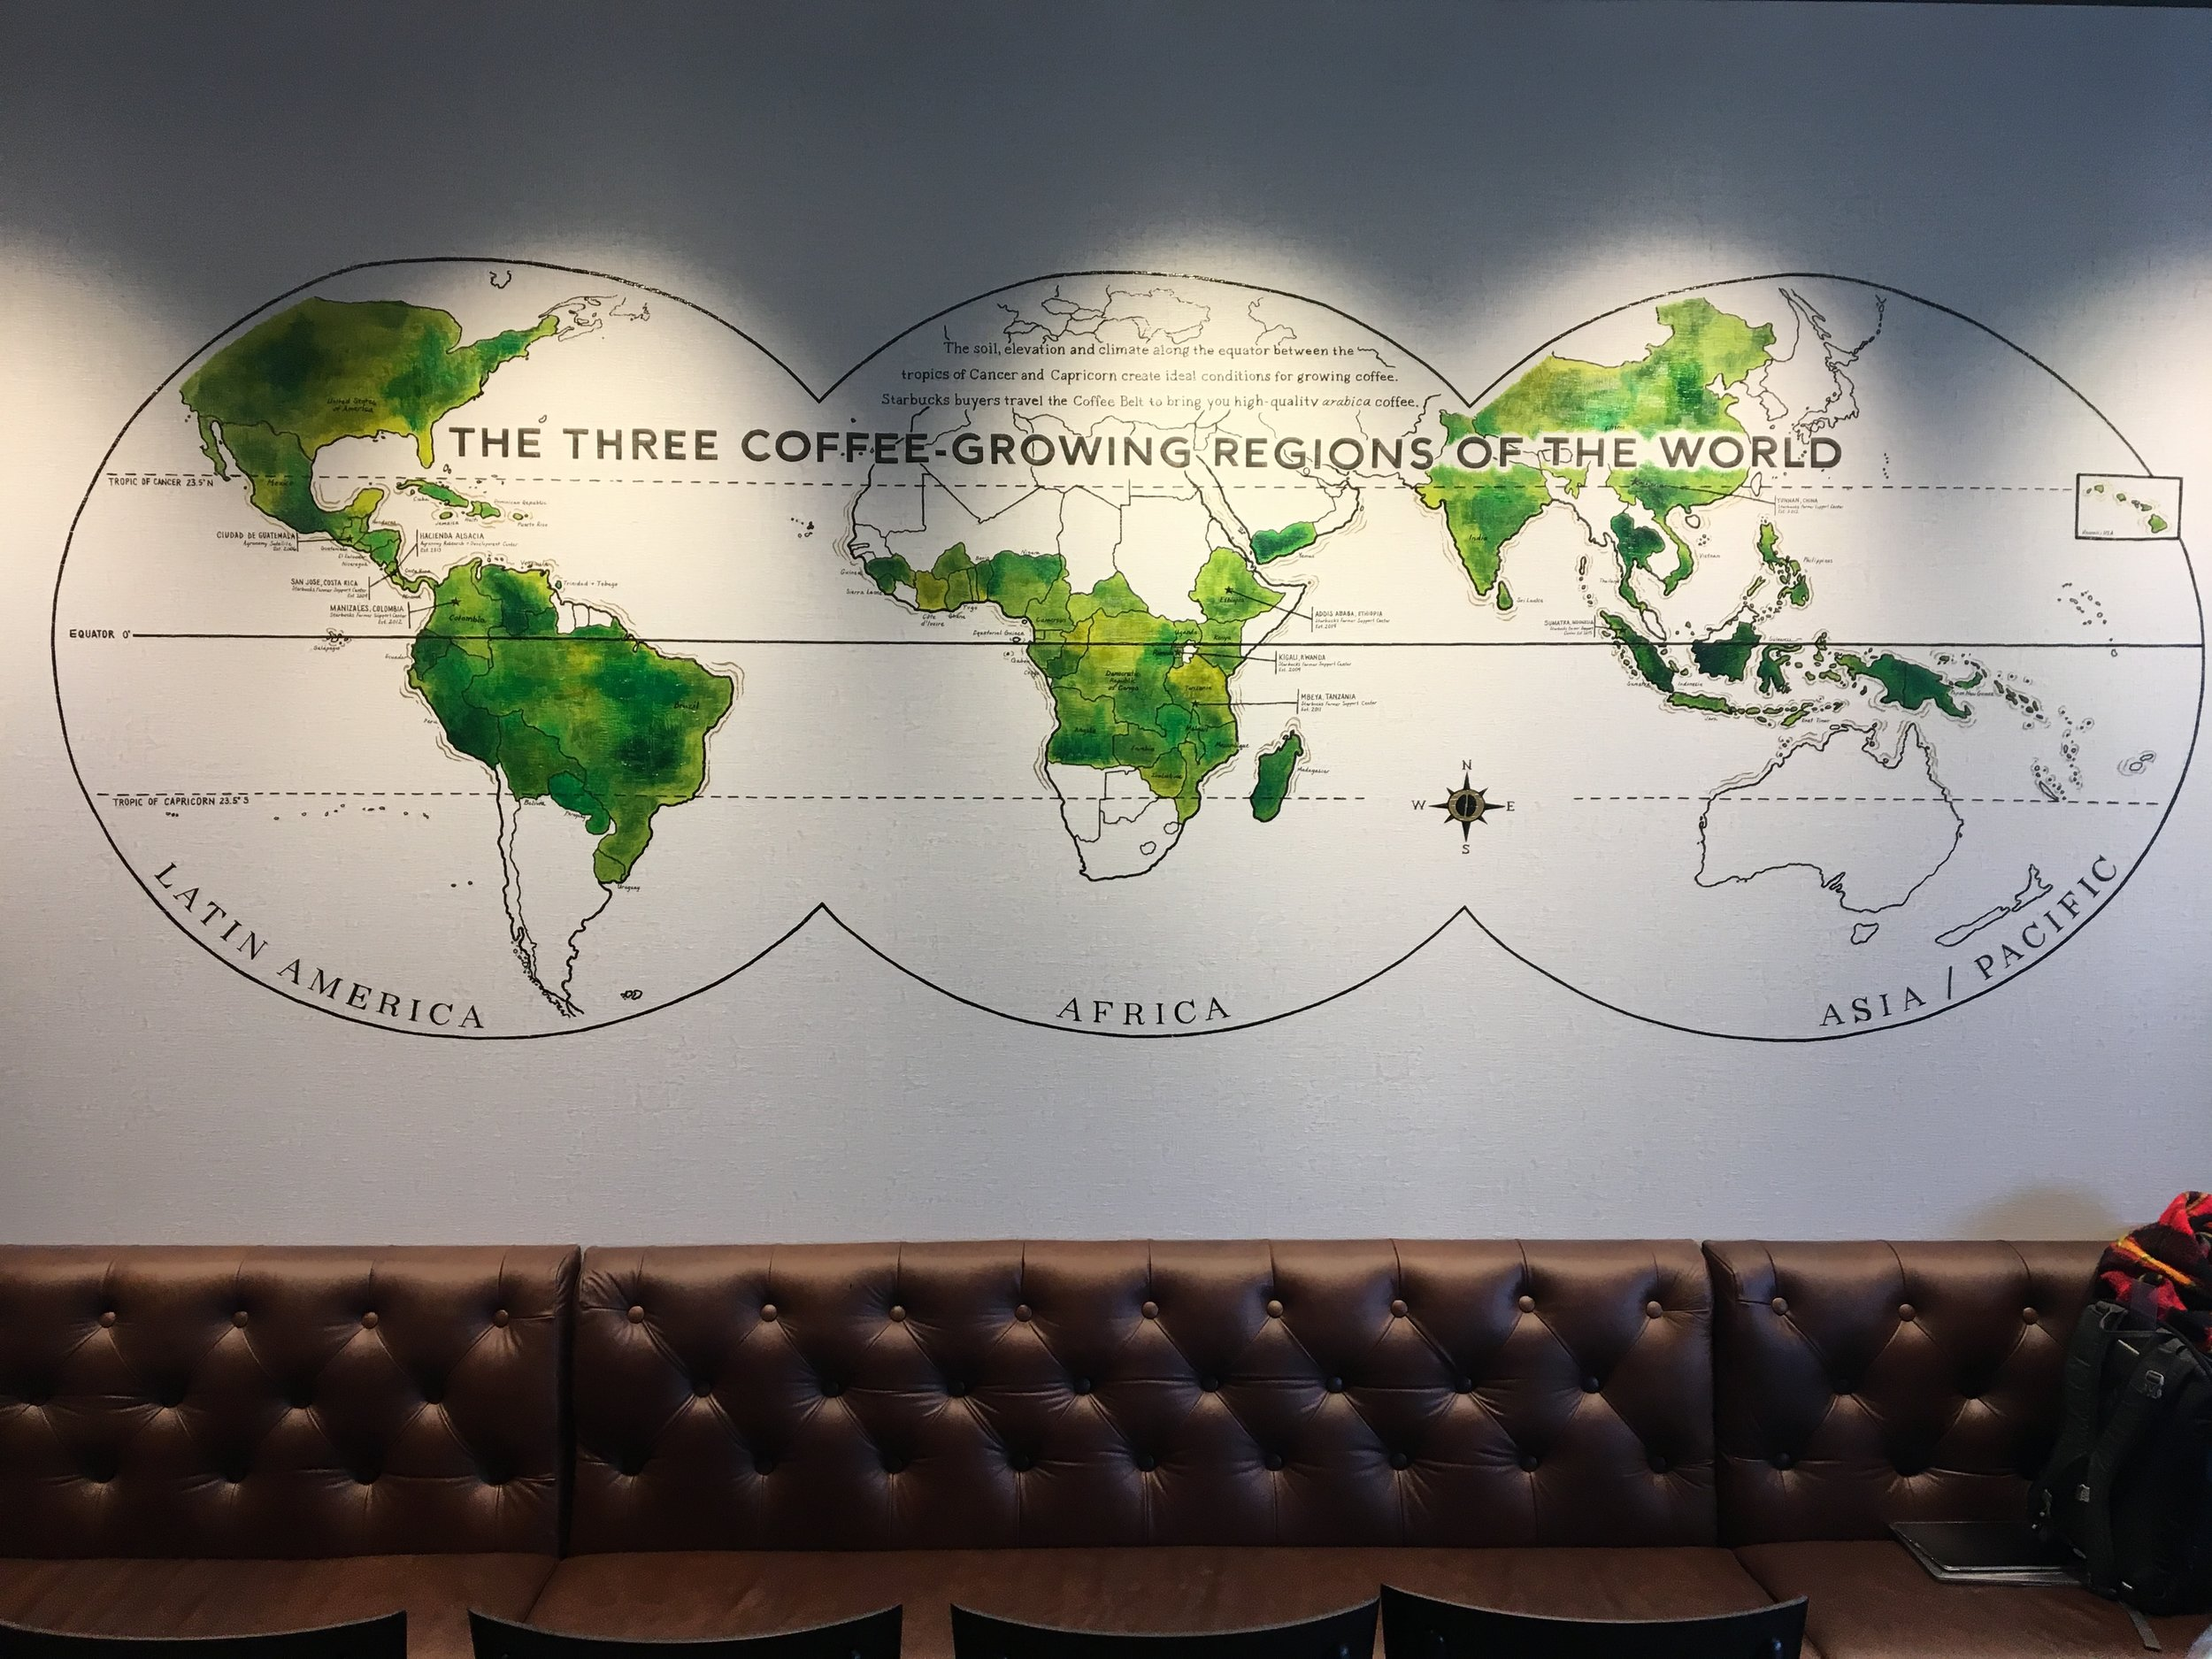 Starbucks - New Jersey - Handpainted on textured wall